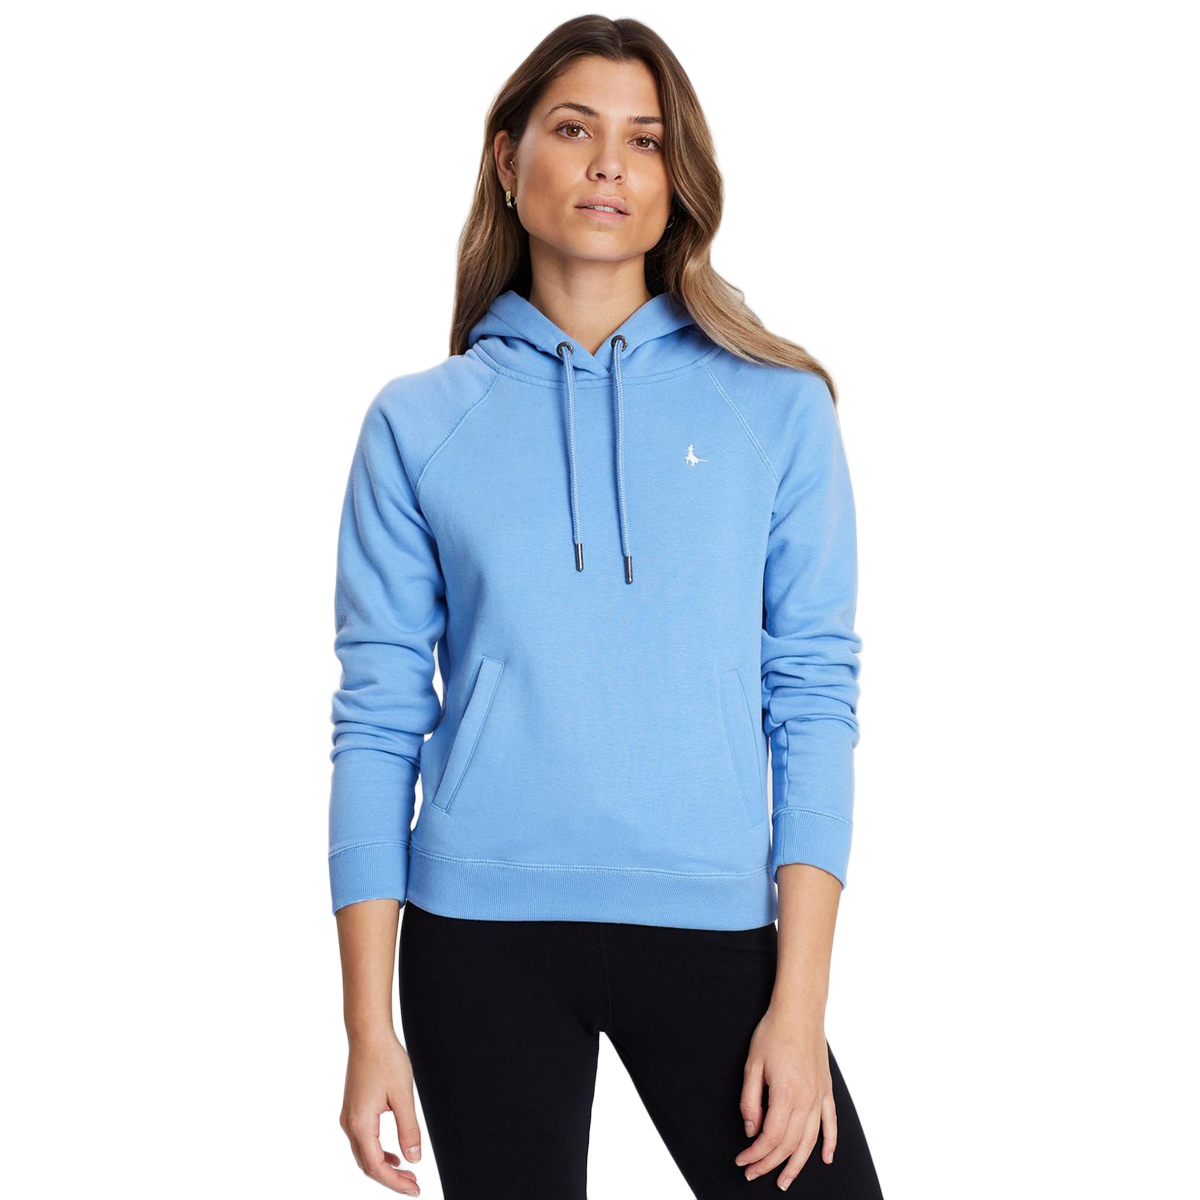 Jack Wills Women's Collingdon Raglan Hoodie - Blue, 2